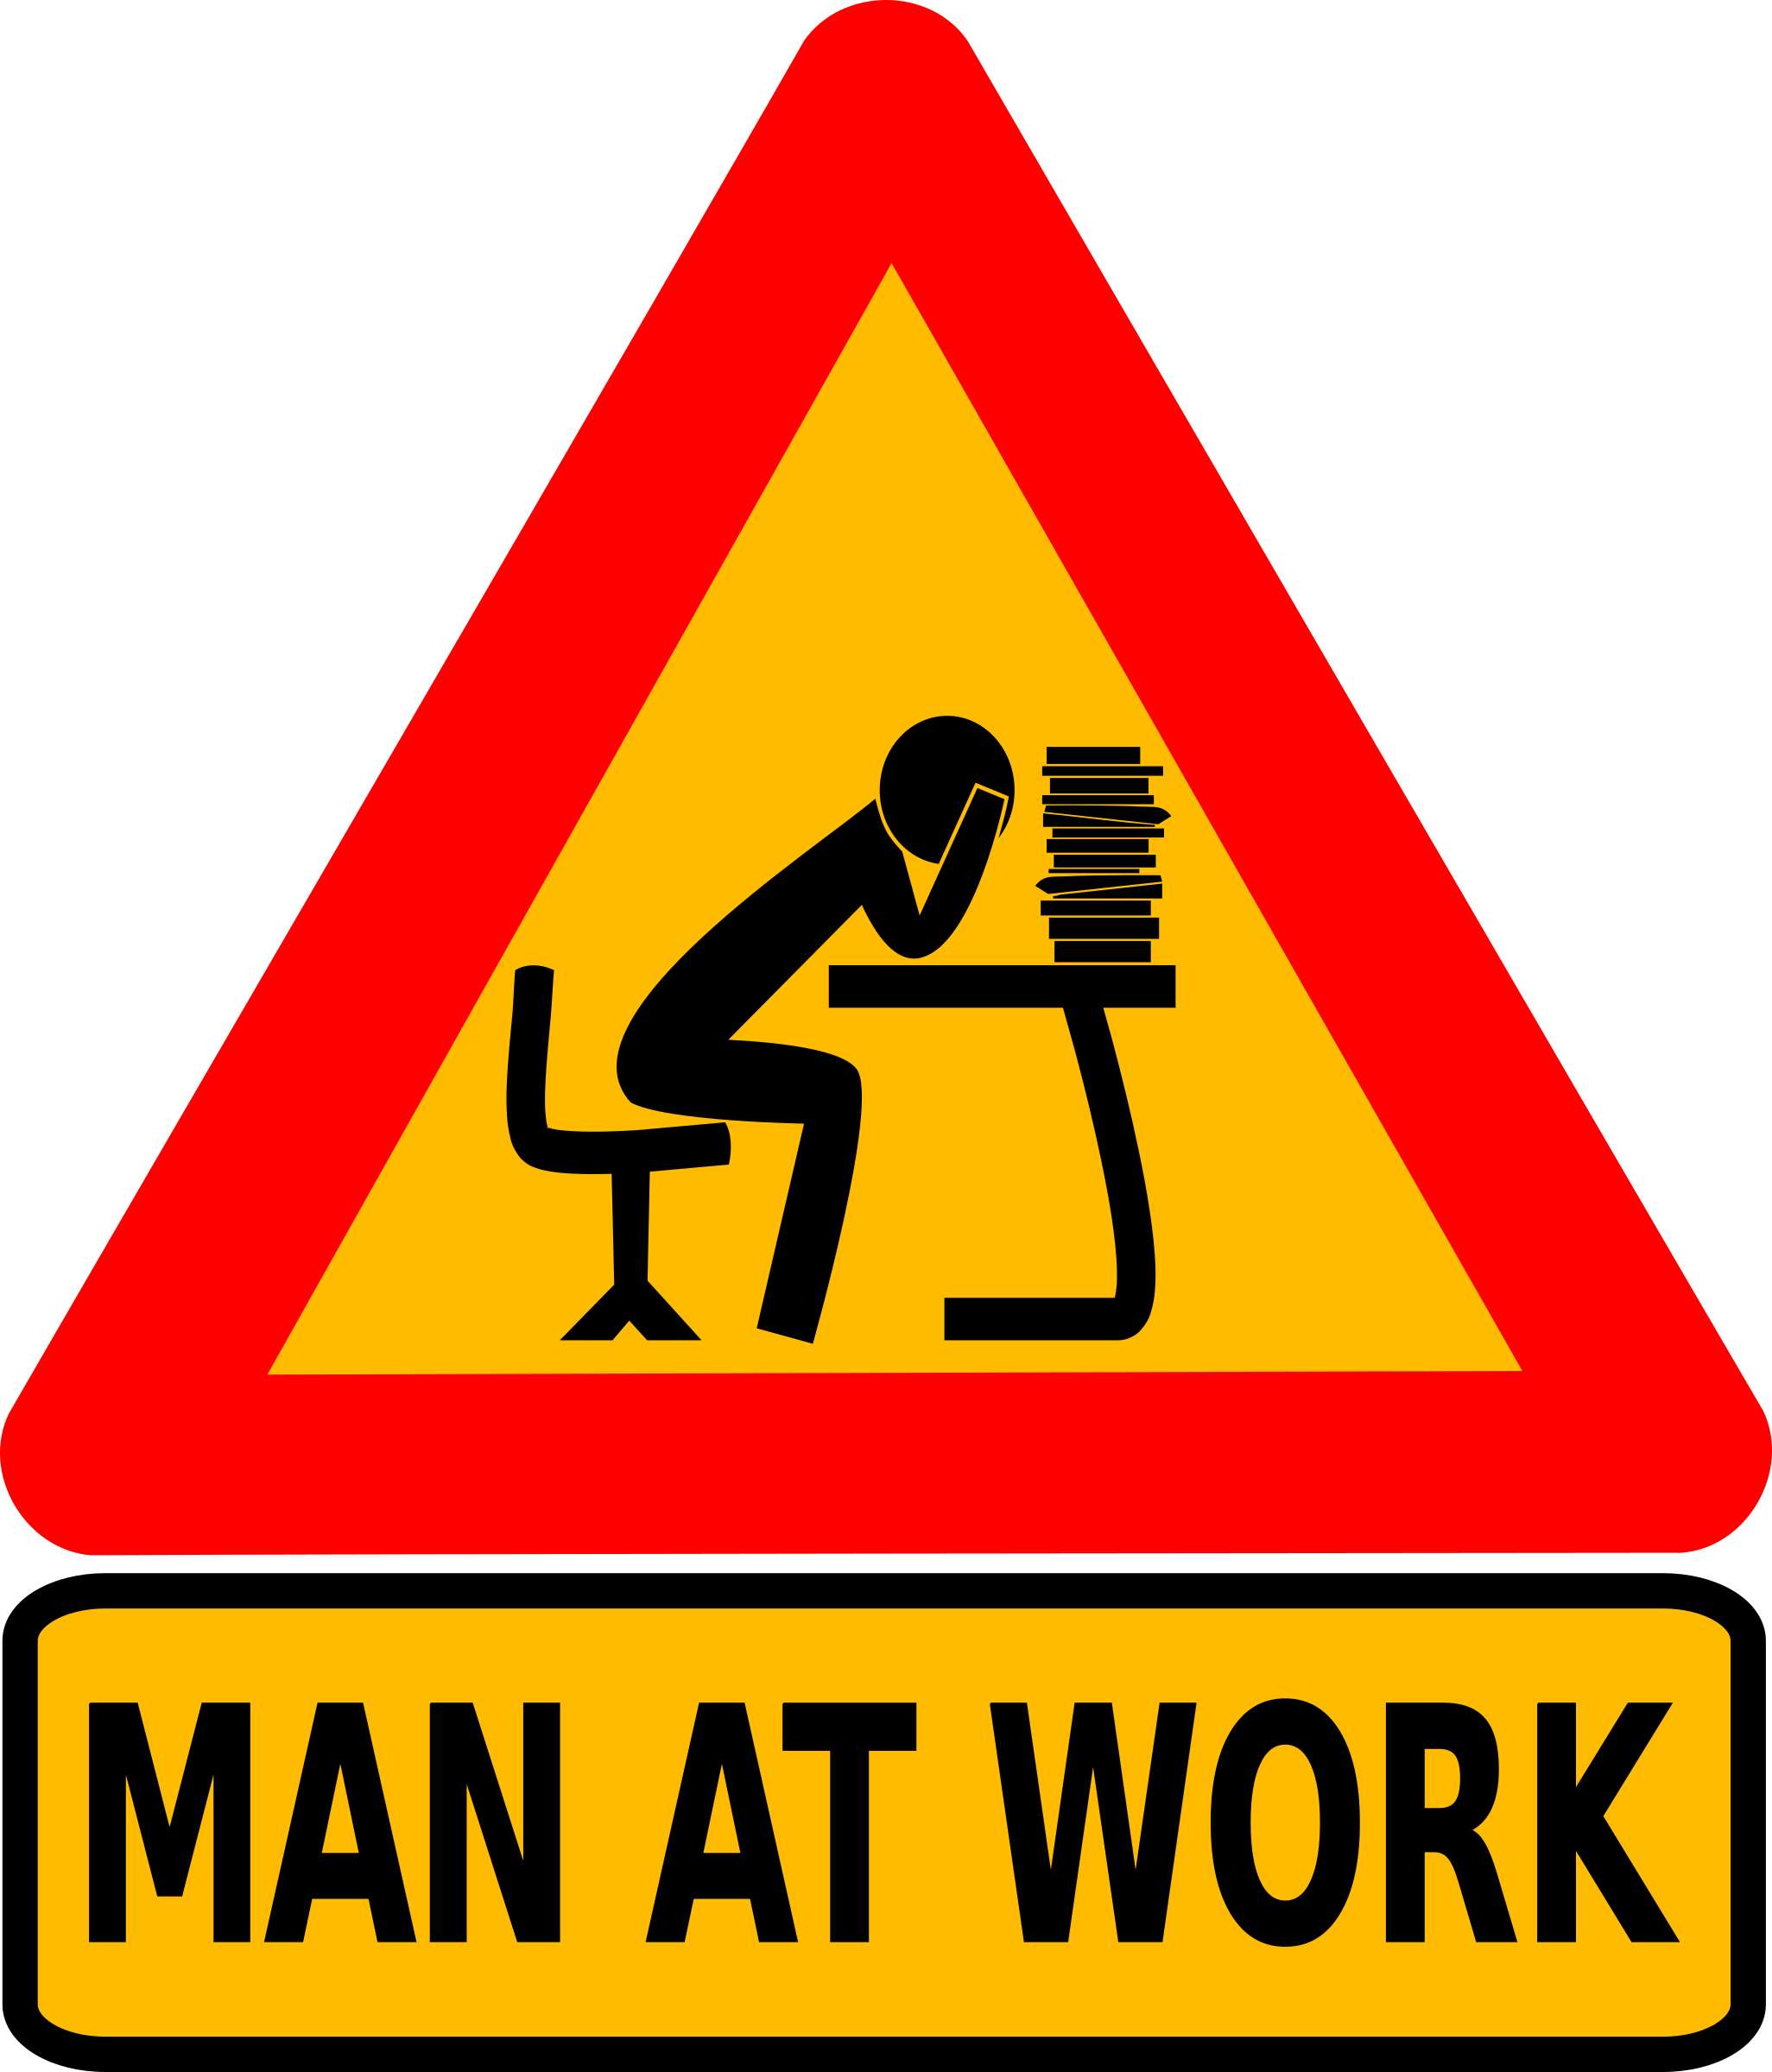 Man at intellectual work by dominiquechappard